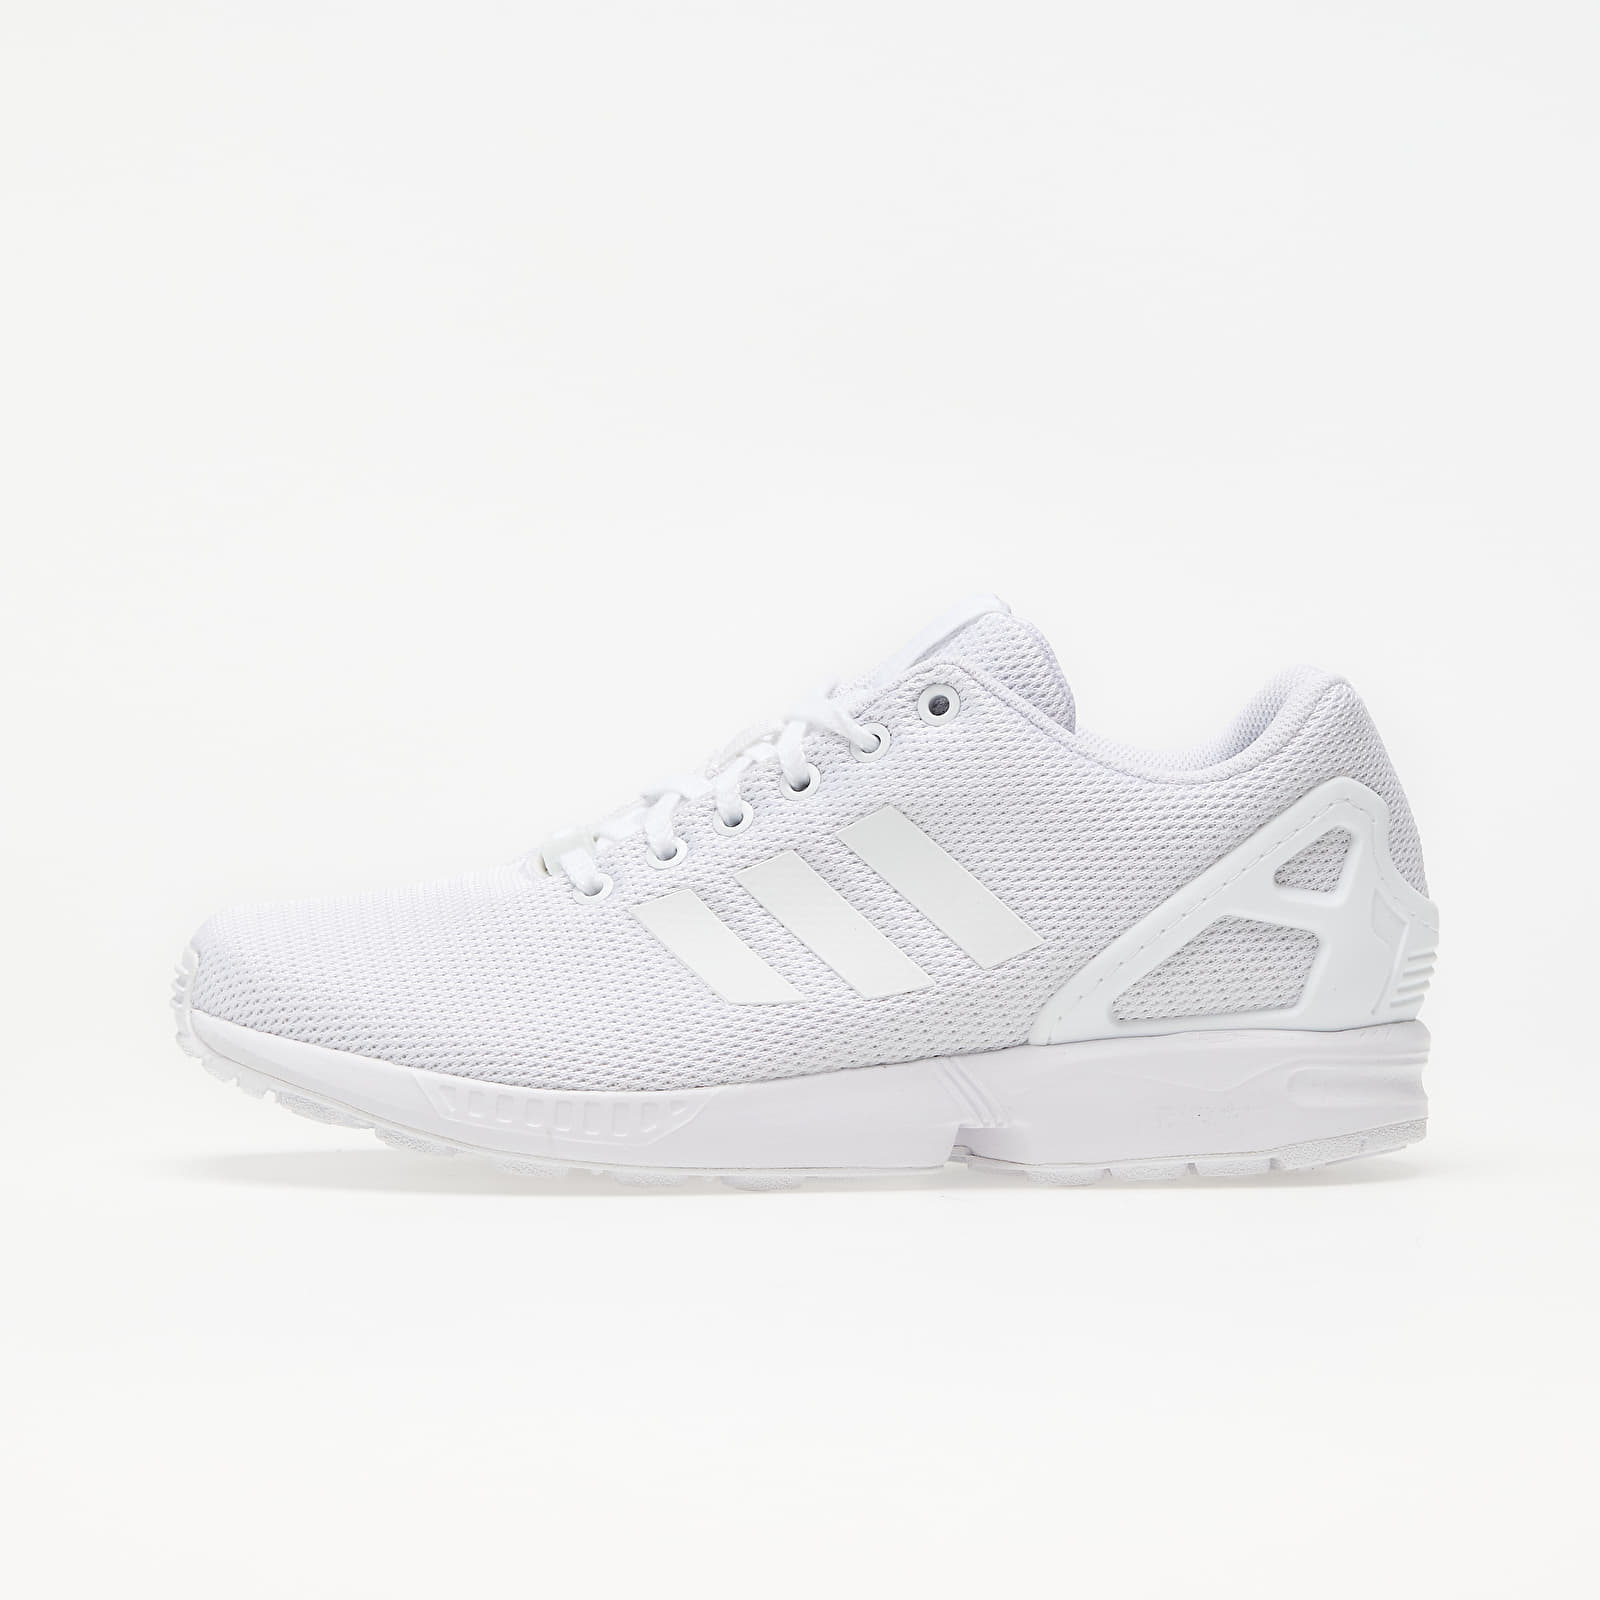 adidas ZX Flux Ftw White/ Ftw White/ Cool Grey EUR 42 2/3